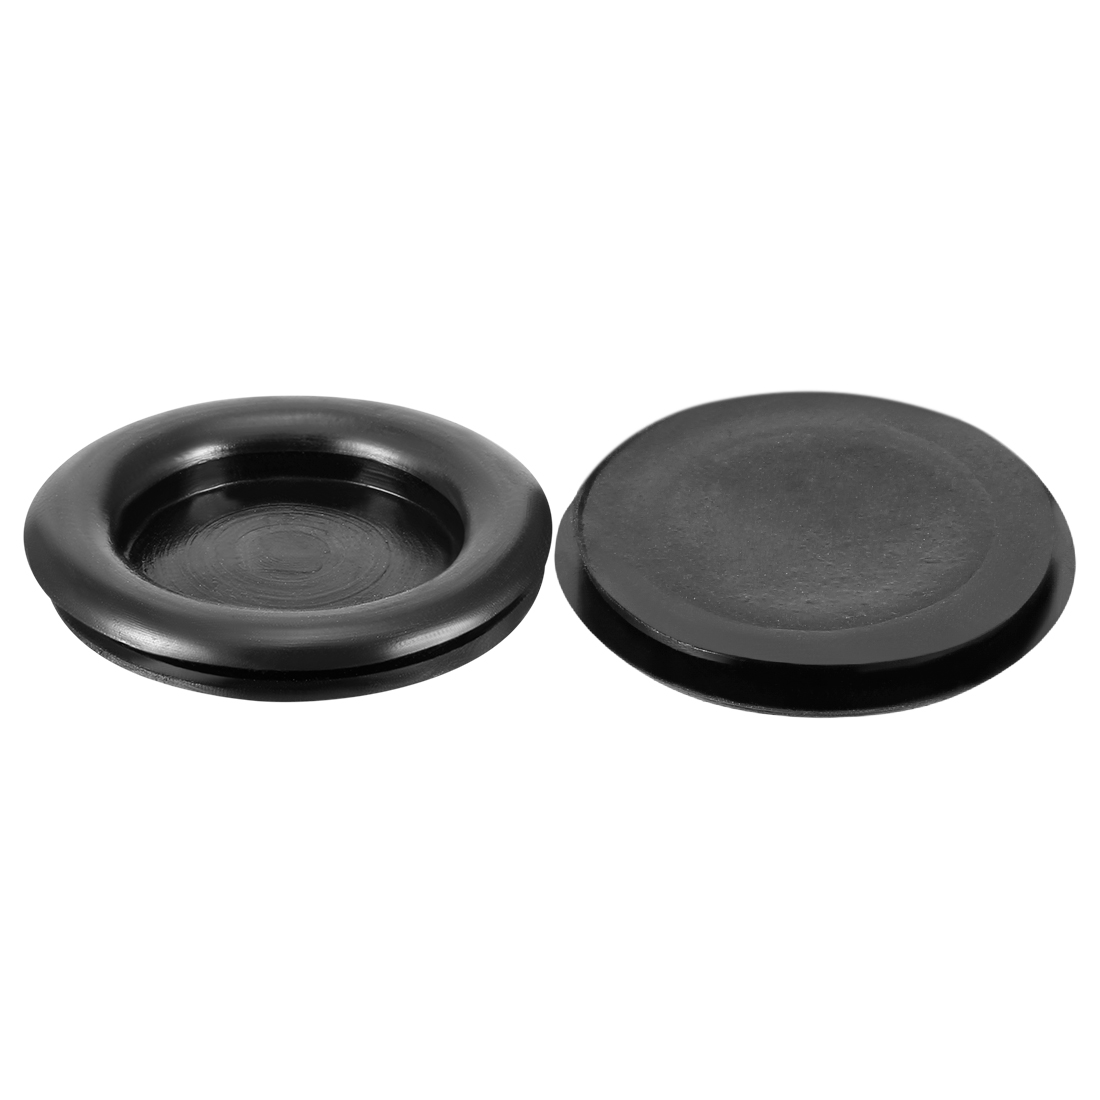 Wire Protector Oil Resistant Rubber Grommets 30mm Mounting Dia 10Pcs Black